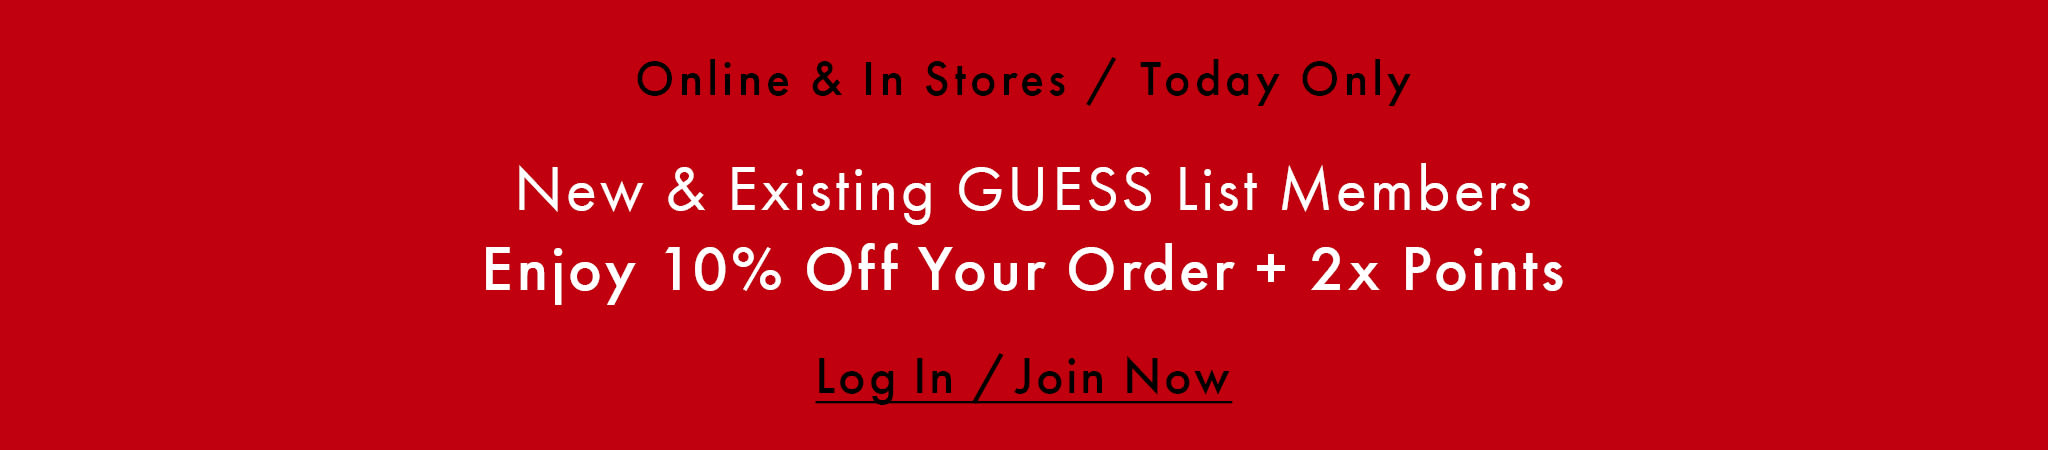 GUESS List Members get 10% off today only